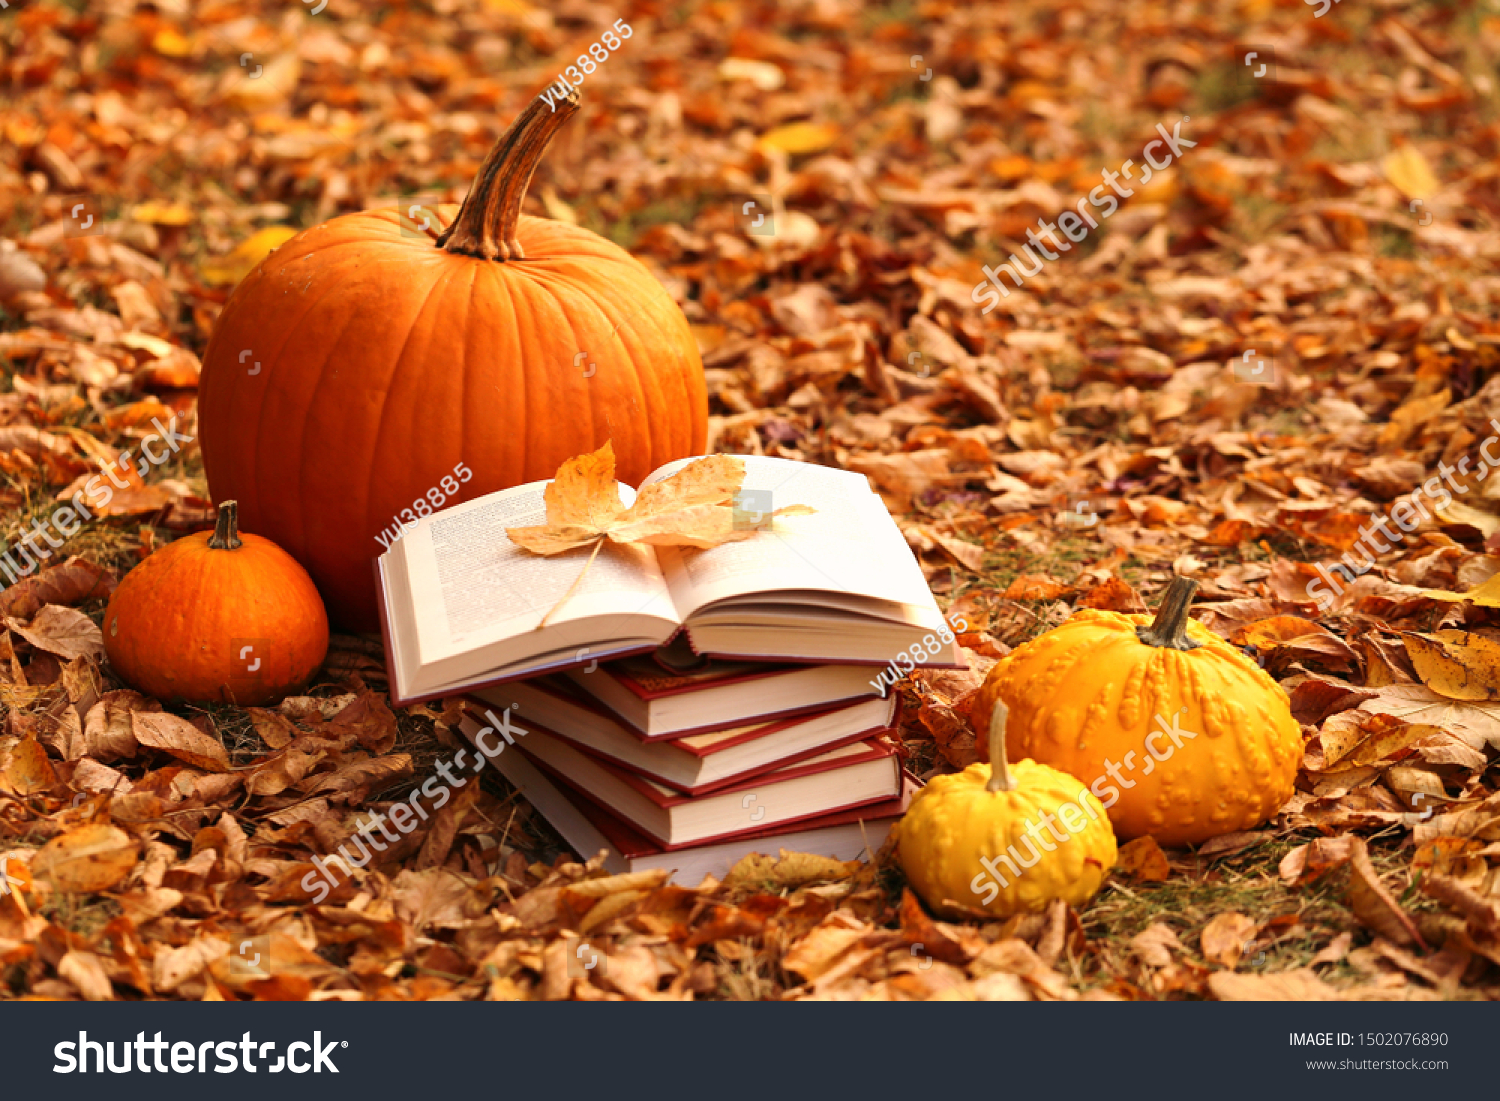 Autumn books. Reading books about autumn.Halloween books. Stack of books and orange pumpkins set on autumn foliage on nature background #1502076890